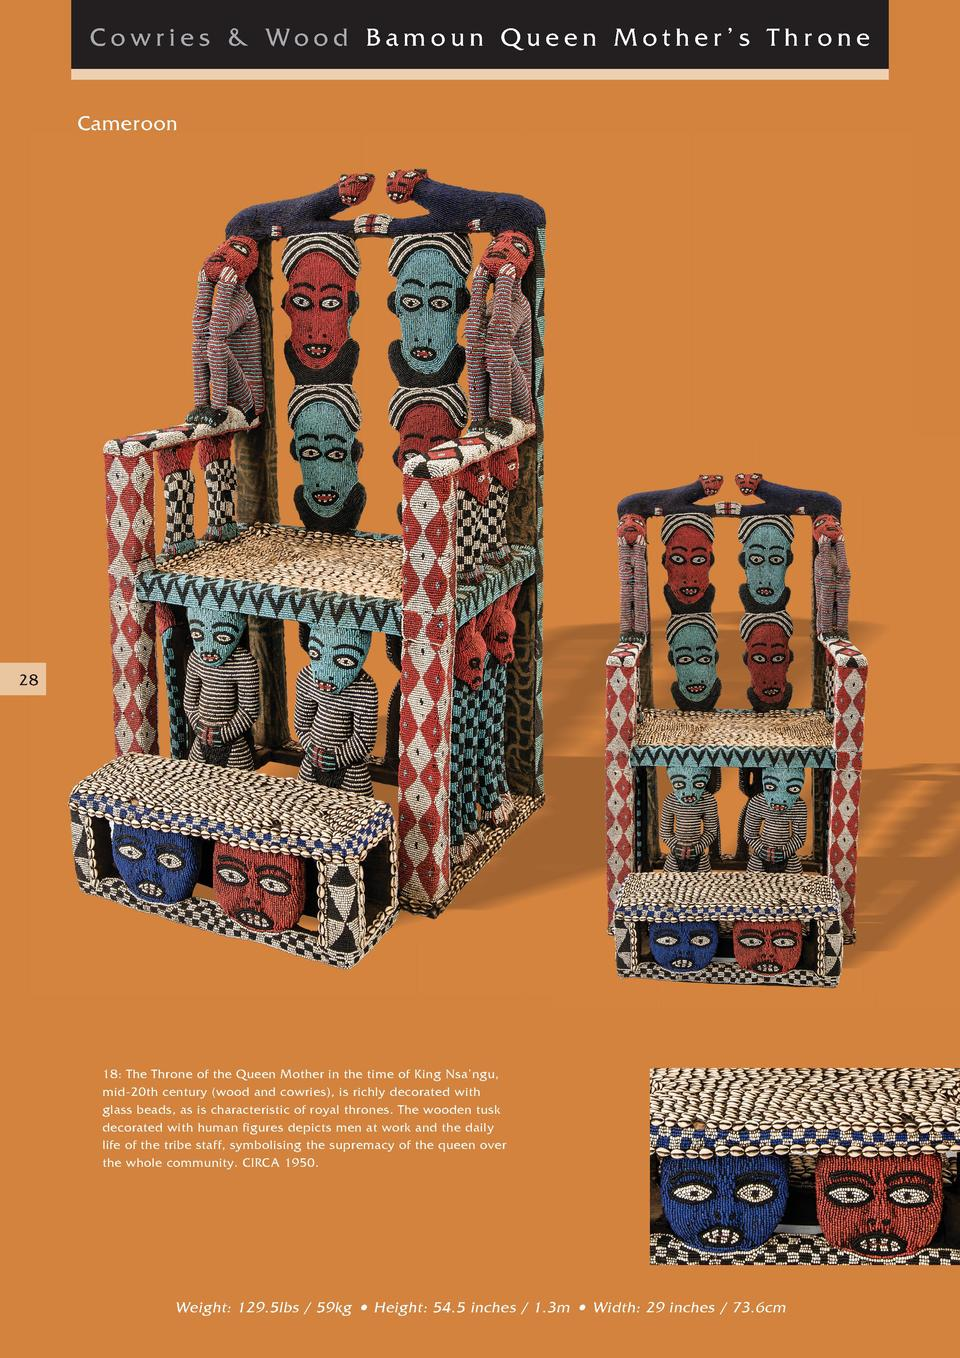 Cowries   Wood Bamoun Queen Mother   s Thr one Cameroon  28  18  The Throne of the Queen Mother in the time of King Nsa   ...